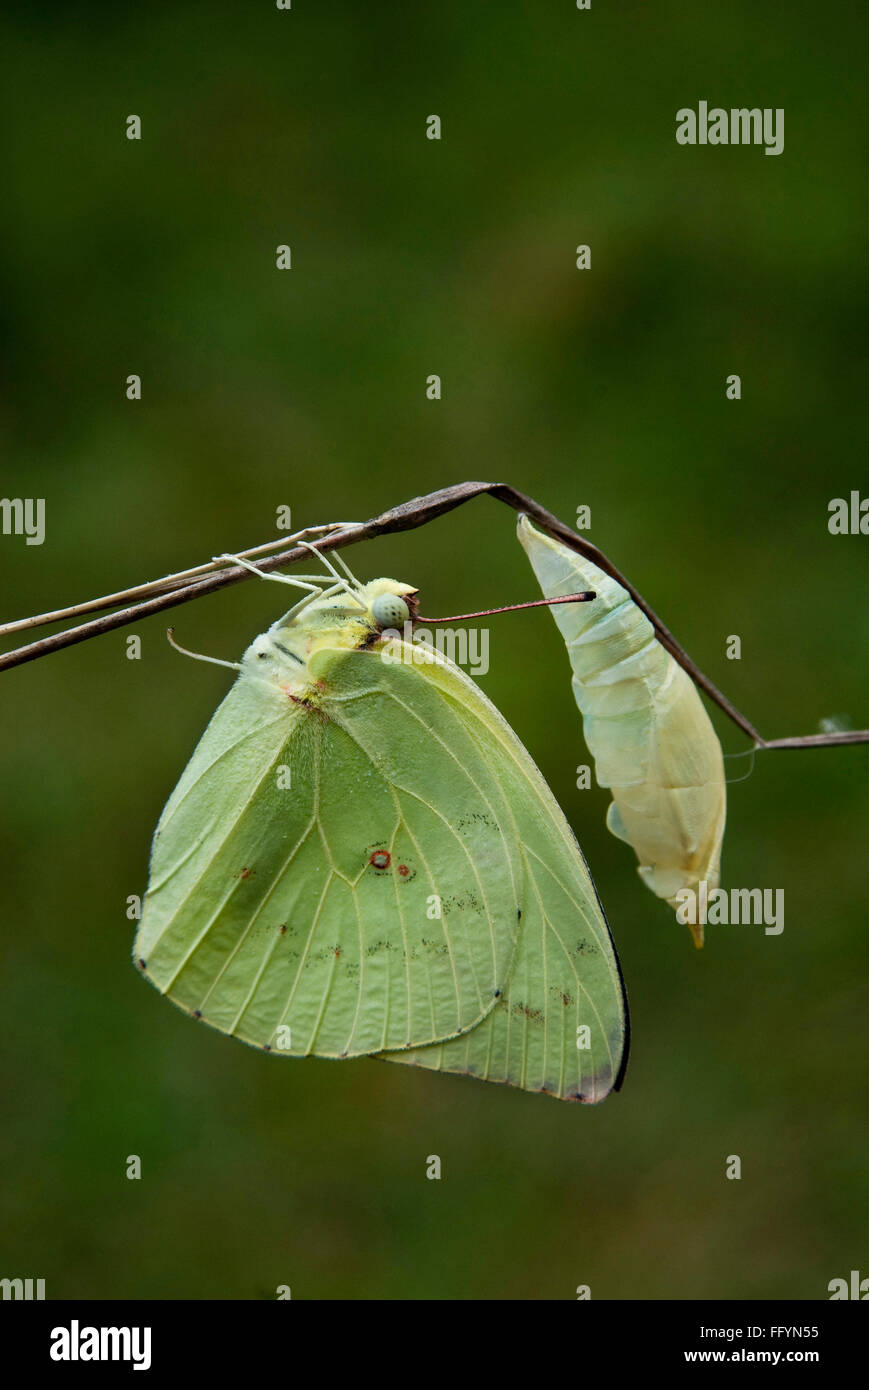 Emigrant emerged from pupa and drying wings Omkar hills Bangalore Karnataka India Asia - Stock Image